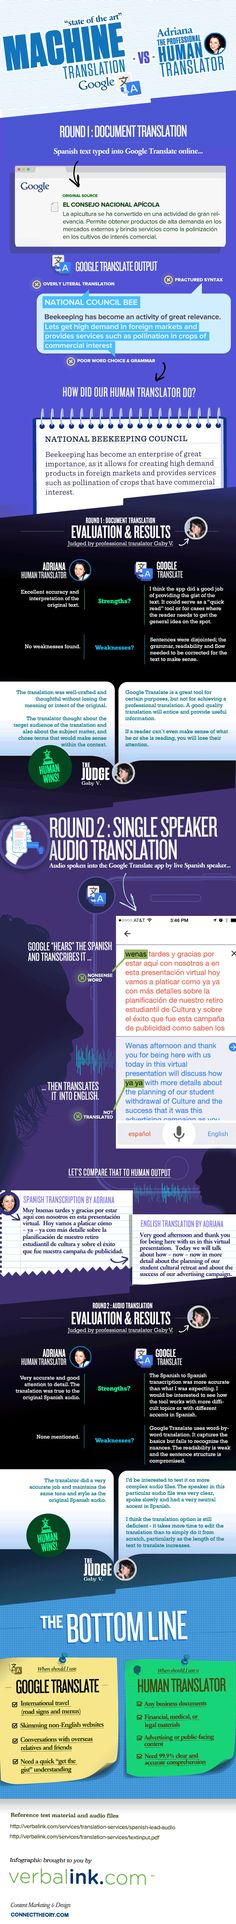 1000 Images About General Spanish On Pinterest Spanish